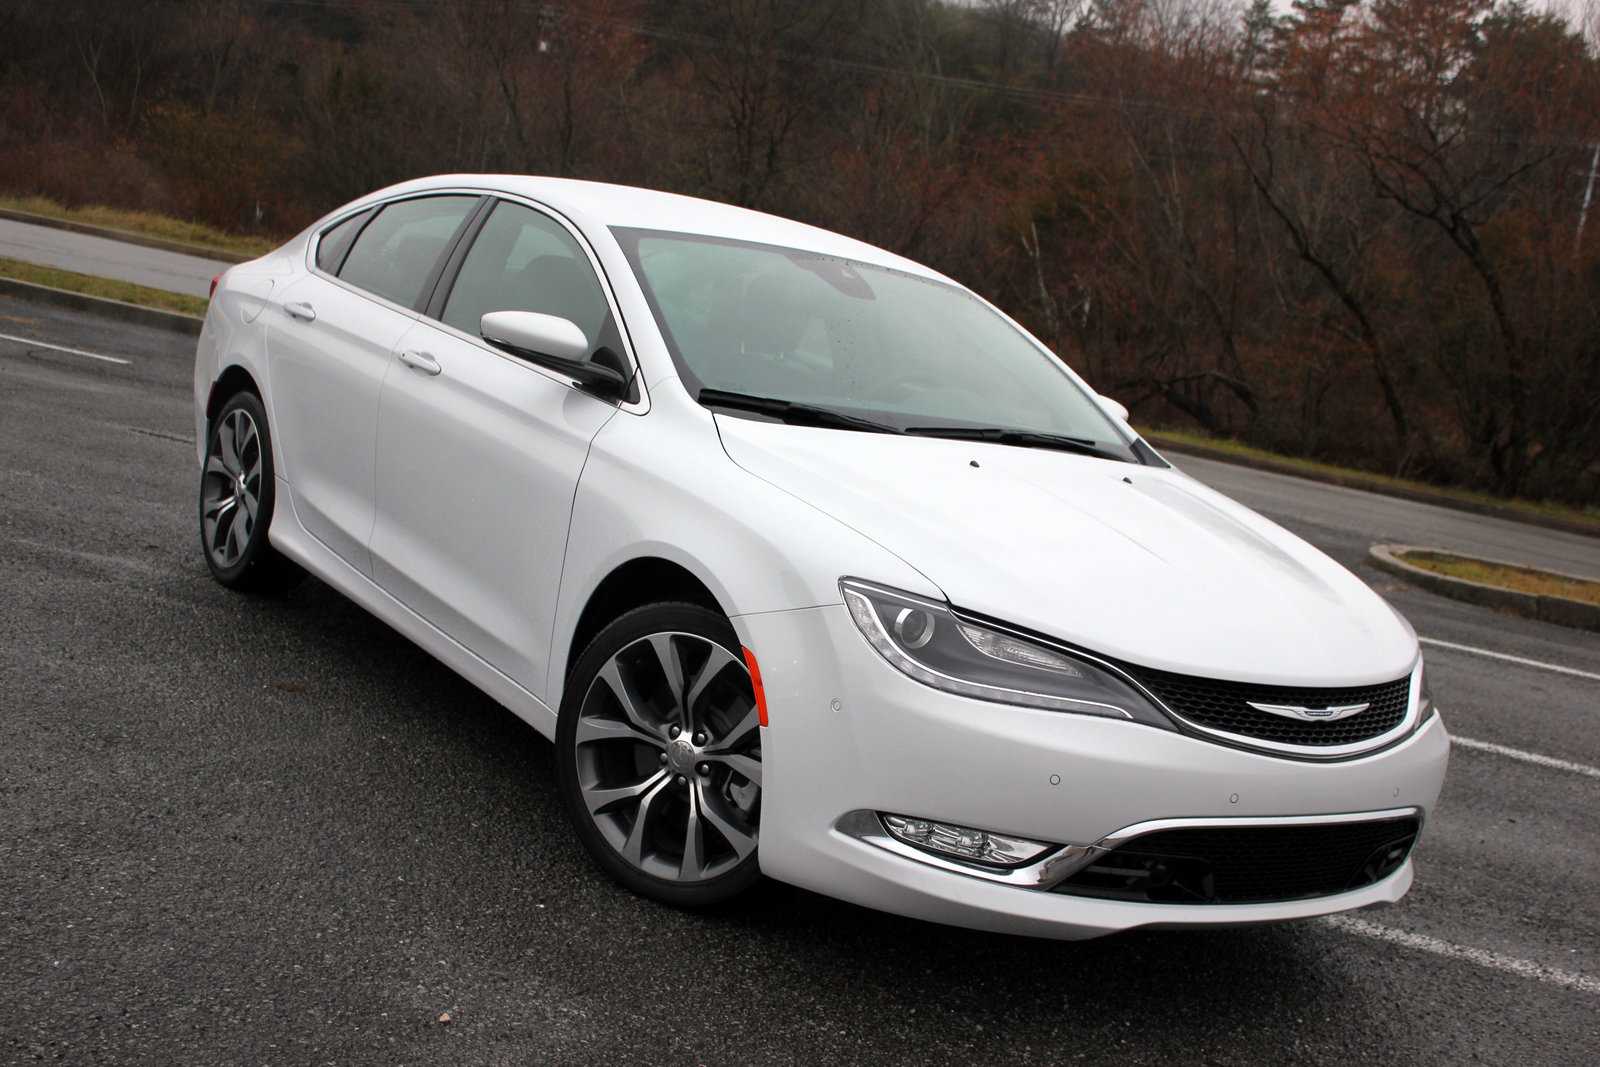 2015 chrysler 200c driven picture 608426 car review top speed. Black Bedroom Furniture Sets. Home Design Ideas